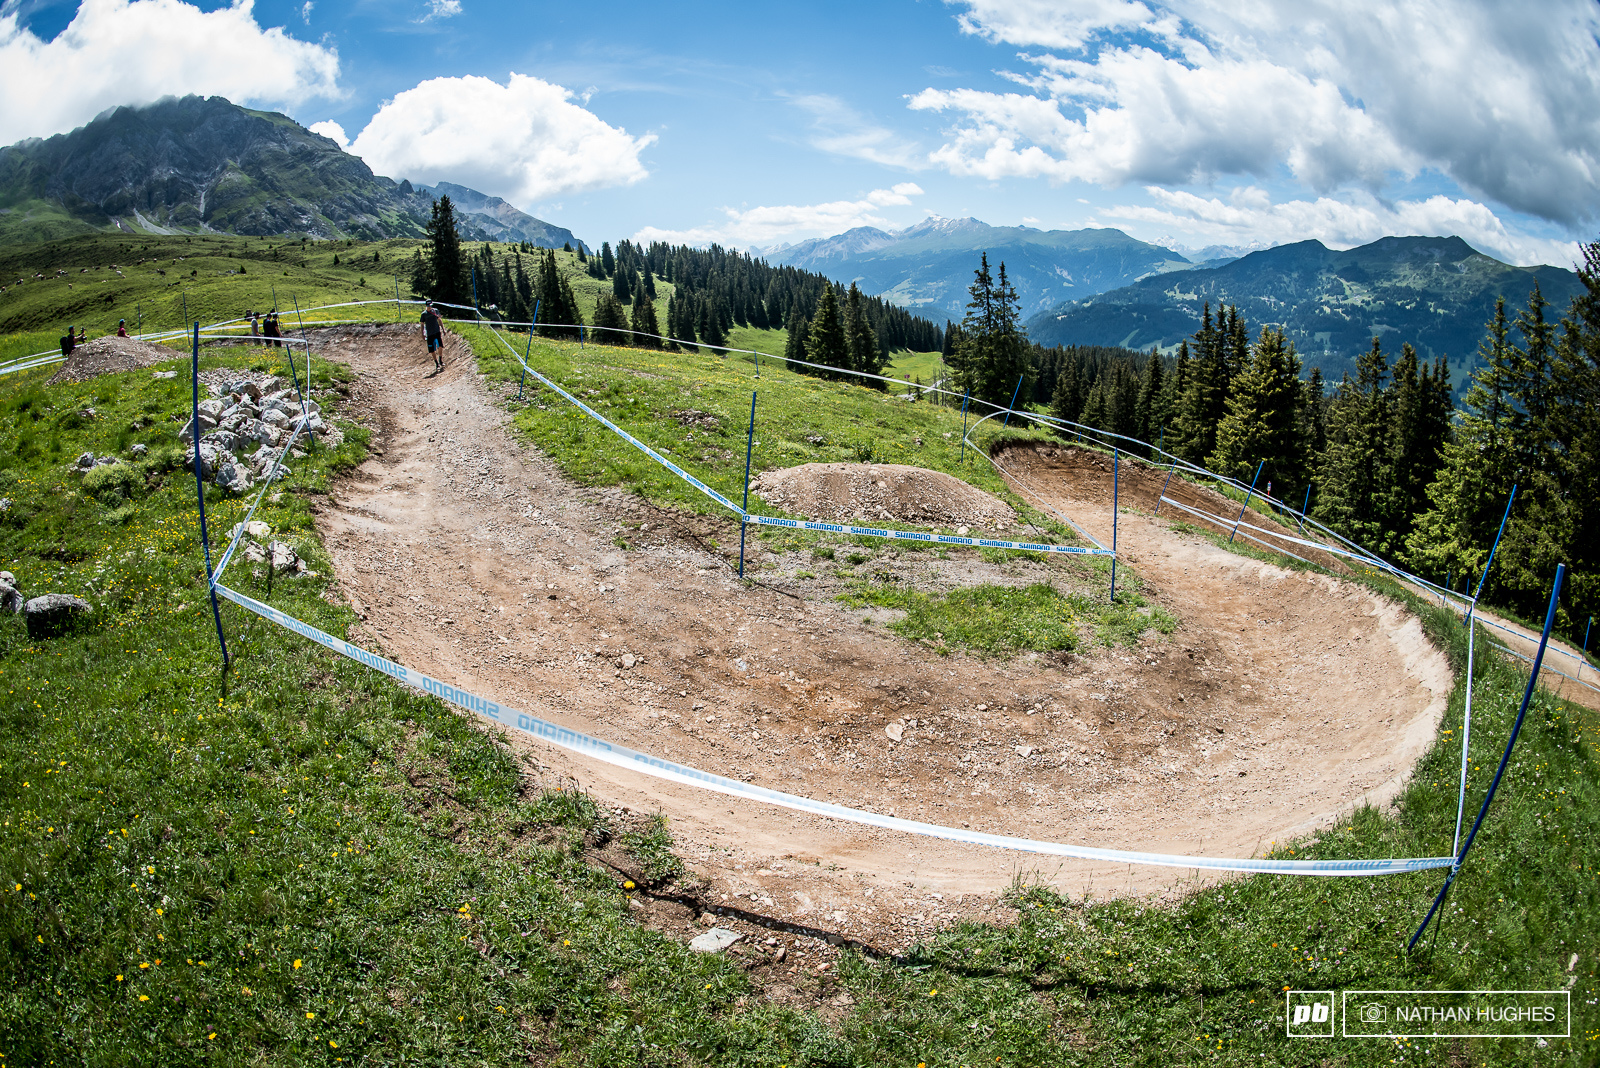 Freshly shaped berms await riders right out of the gate.